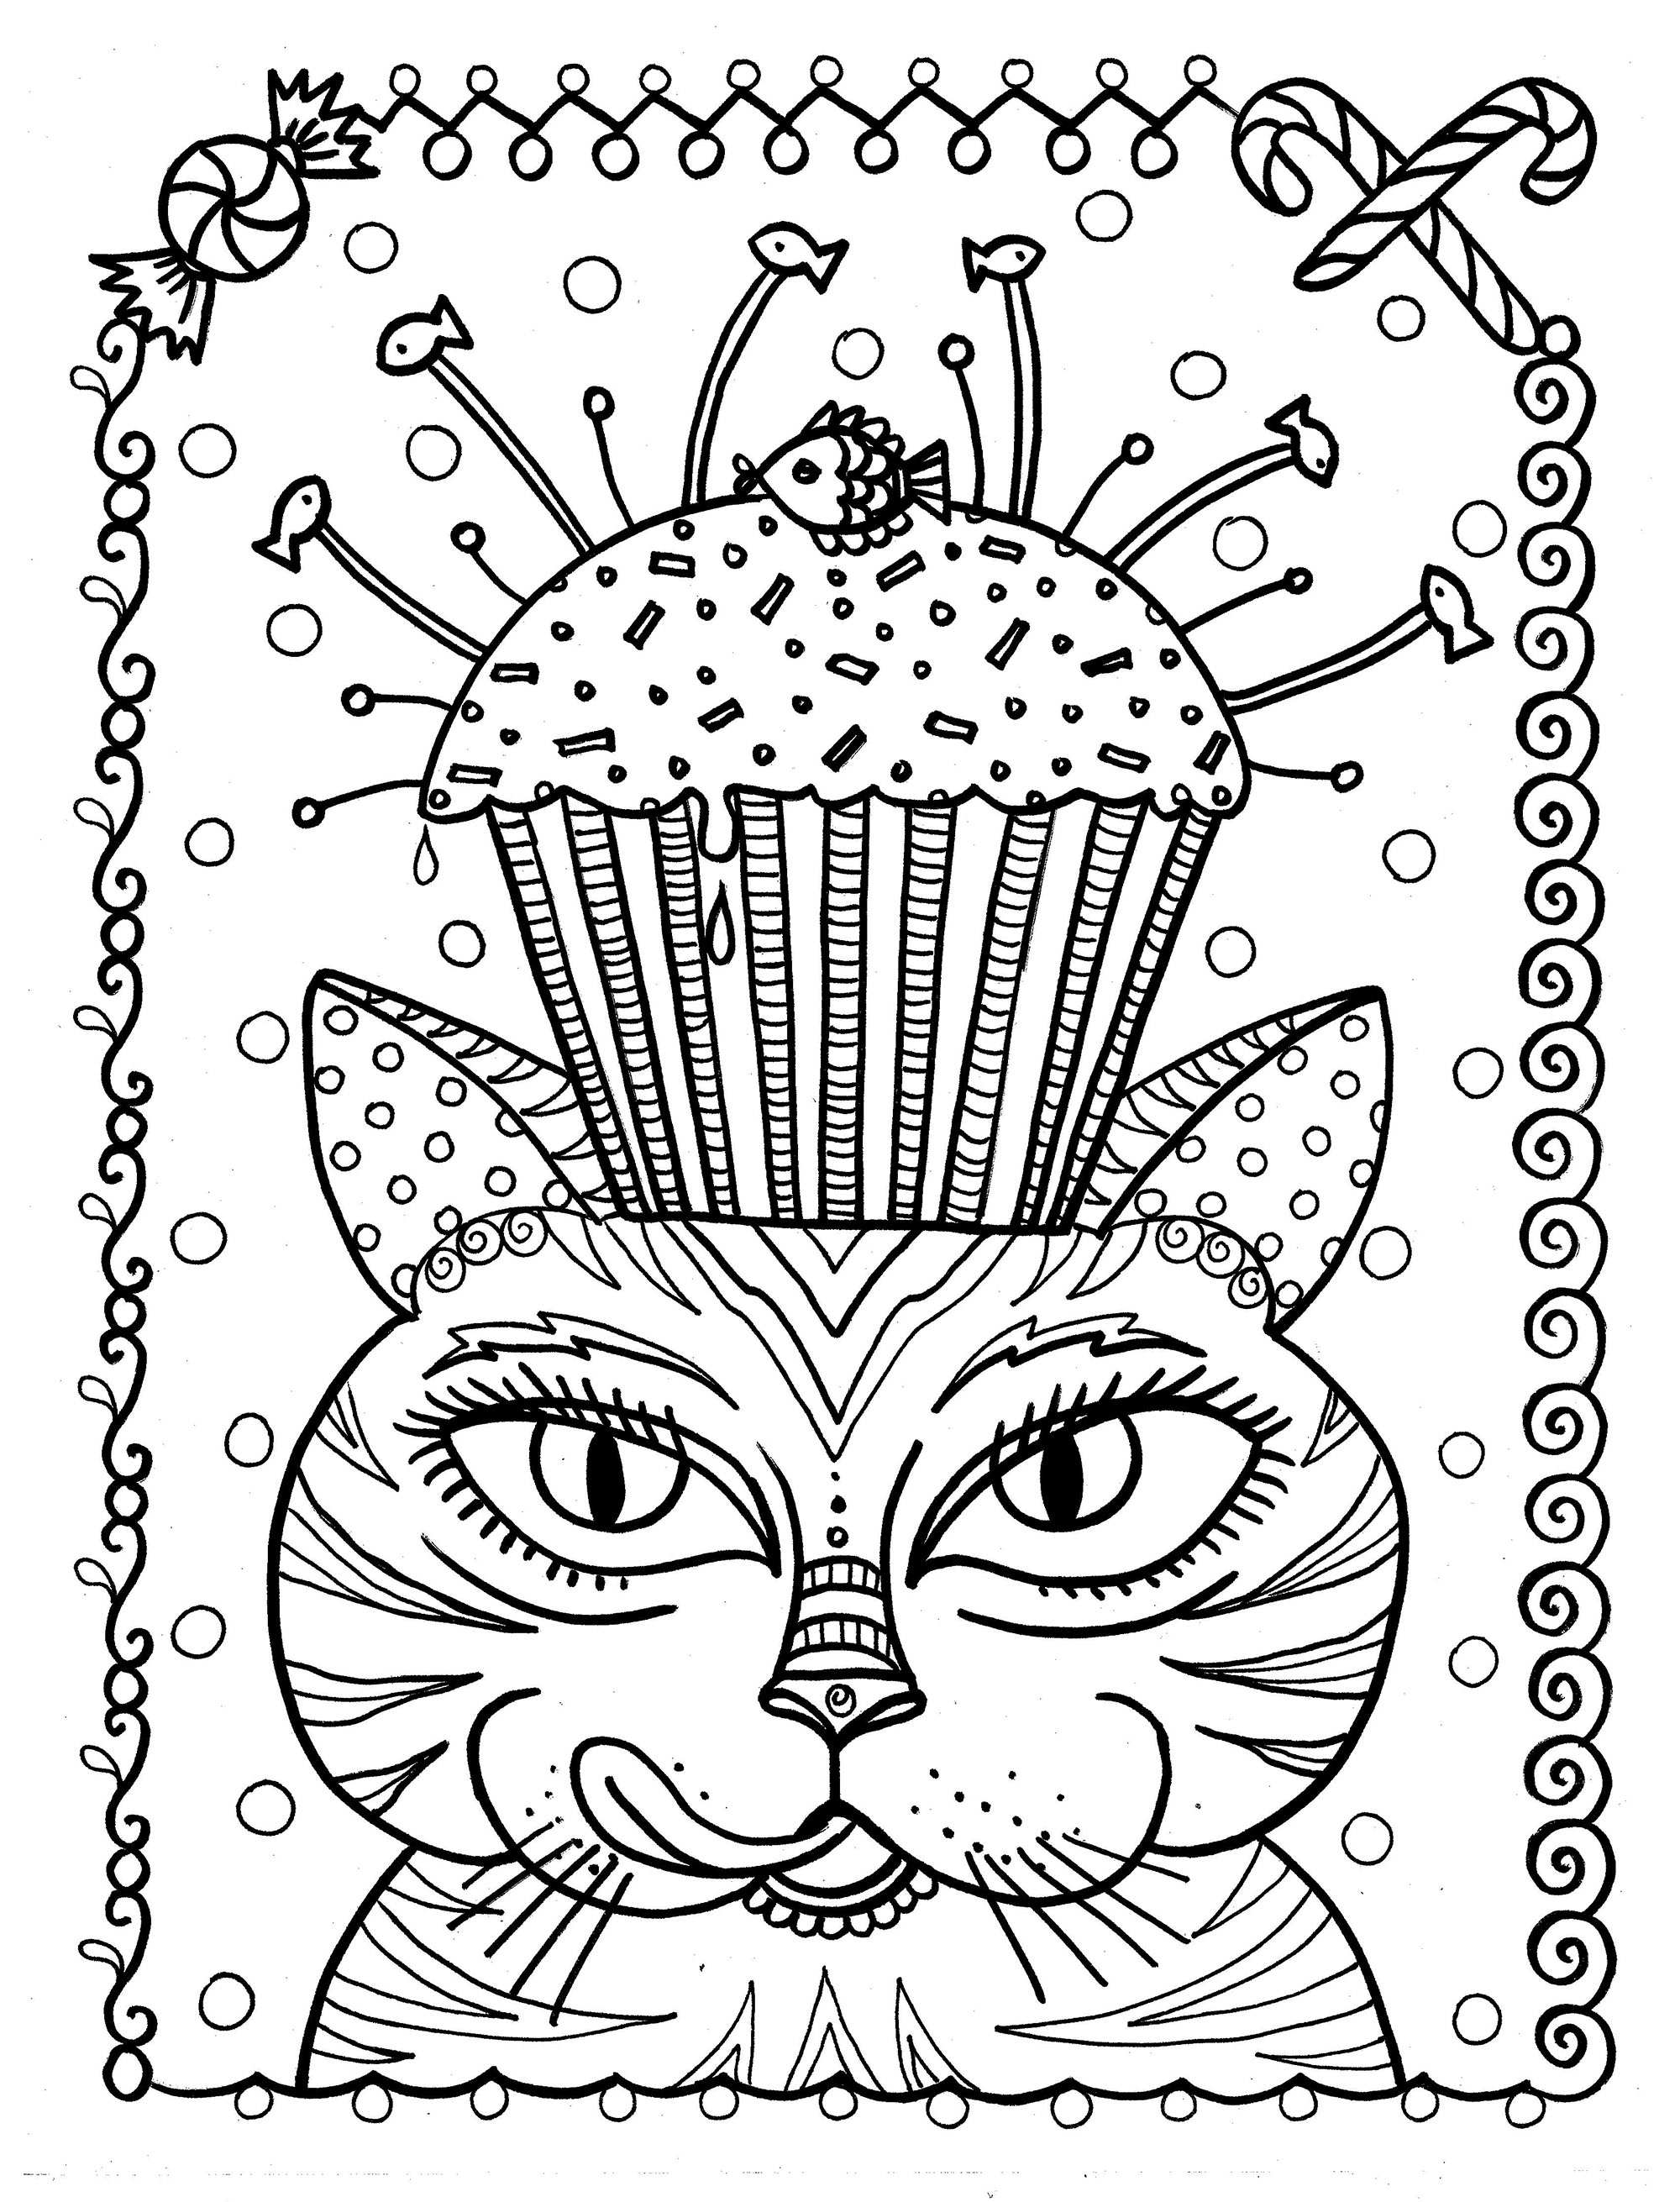 Cup Cake Cat By Deborah Muller Cupcakes And Cakes Coloring